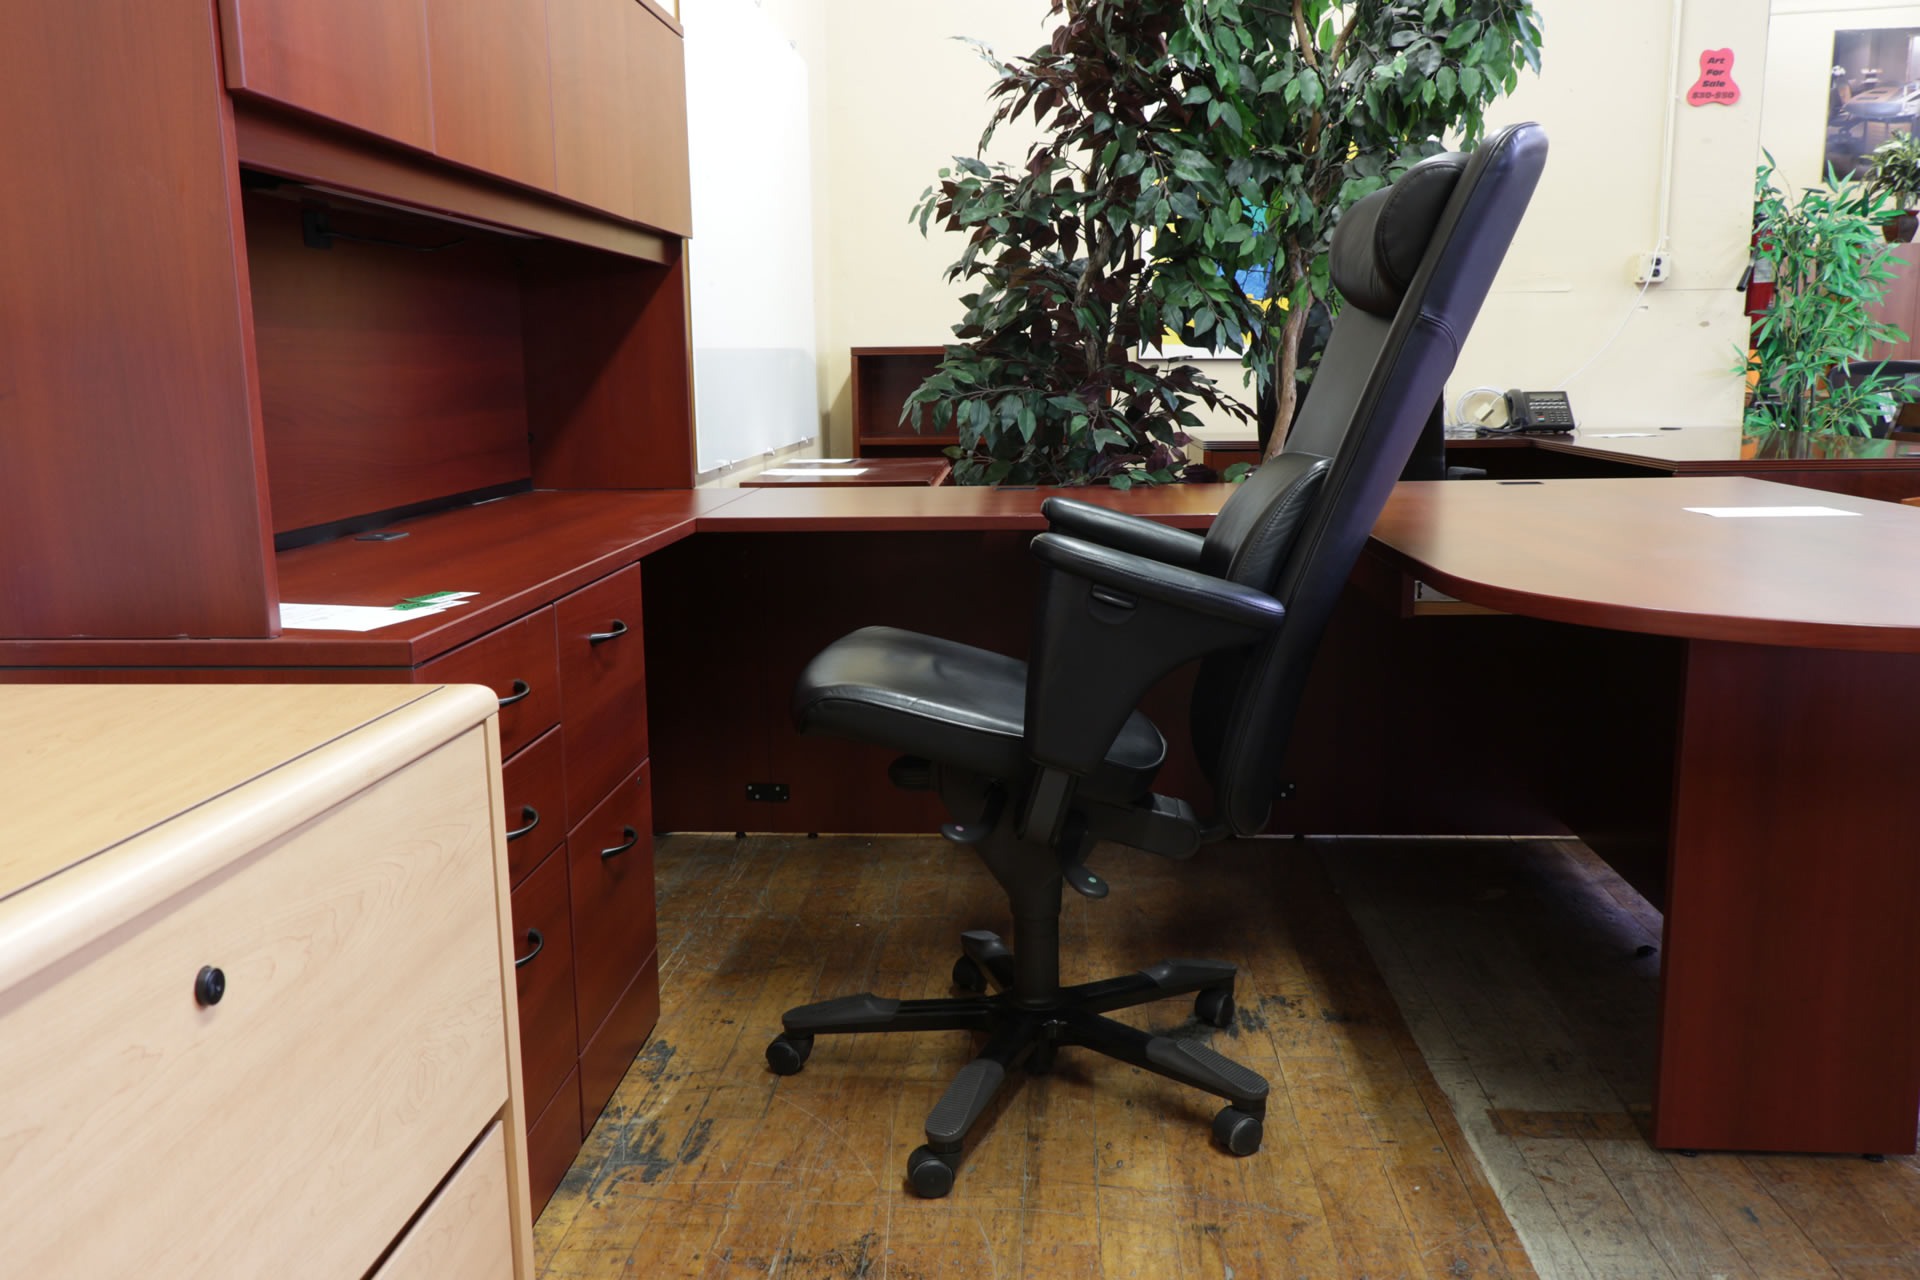 peartreeofficefurniture_peartreeofficefurniture_peartreeofficefurniture_img_8986.jpg